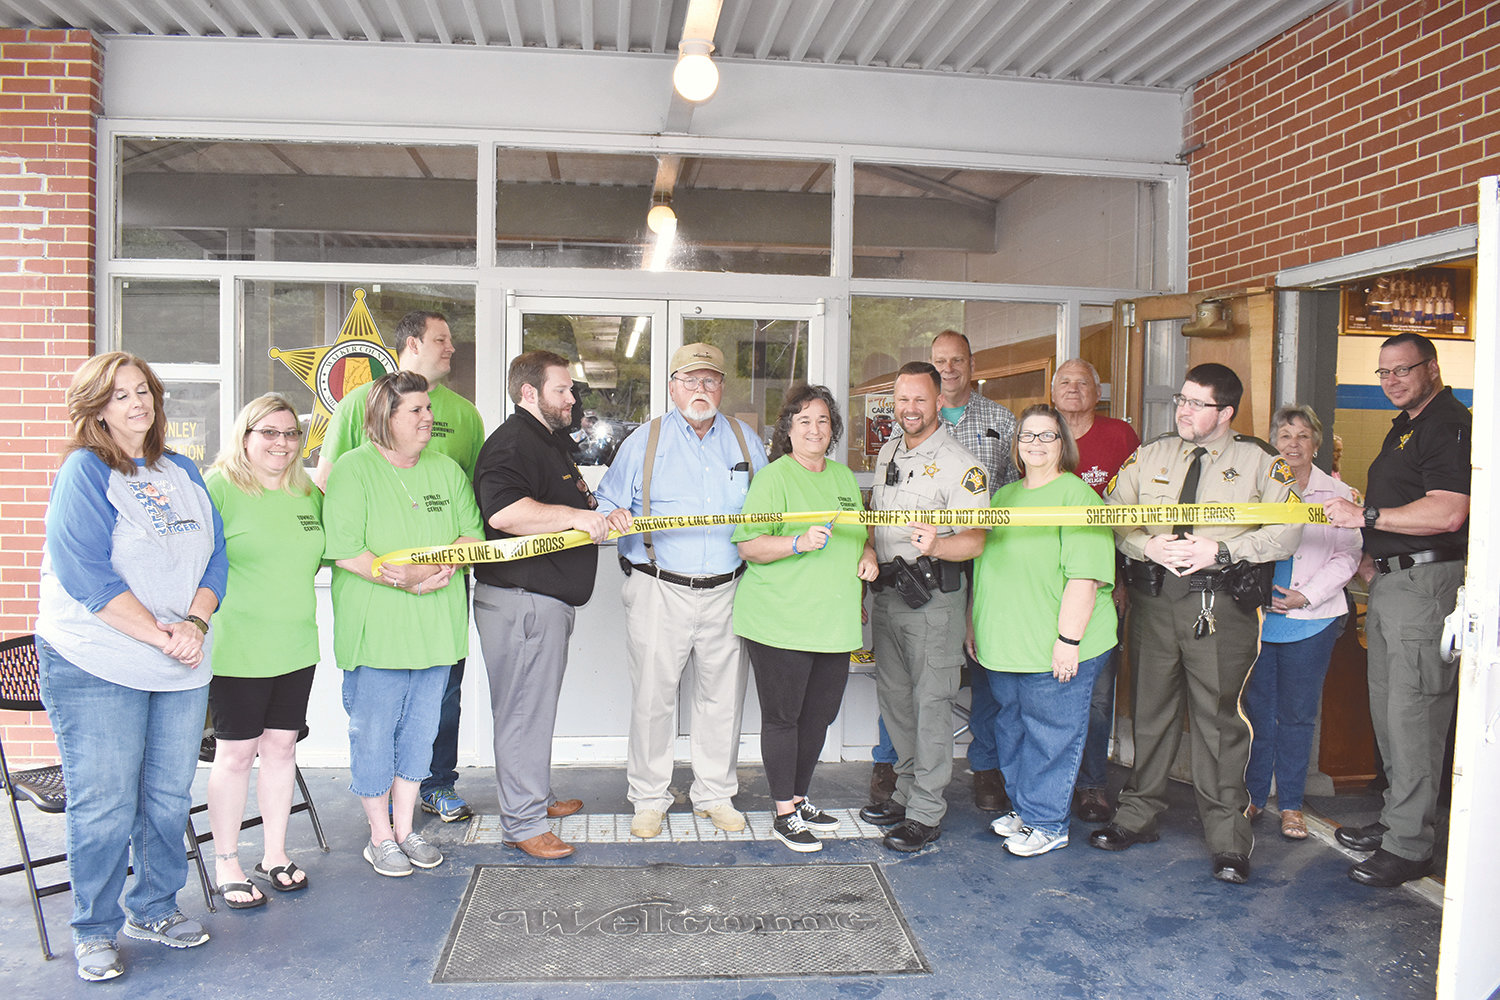 Denise Clements, the president of the Townley Community Center, cuts the ribbon to the new Walker County Sheriff's Substation at the center on Saturday, while Sheriff Nick Smith, Walker County Commission Chairman Jerry Bishop and others look on. State Rep. Tim Wadsworth, R-Arley, who is funding cameras for the substation, watched behind the camera.